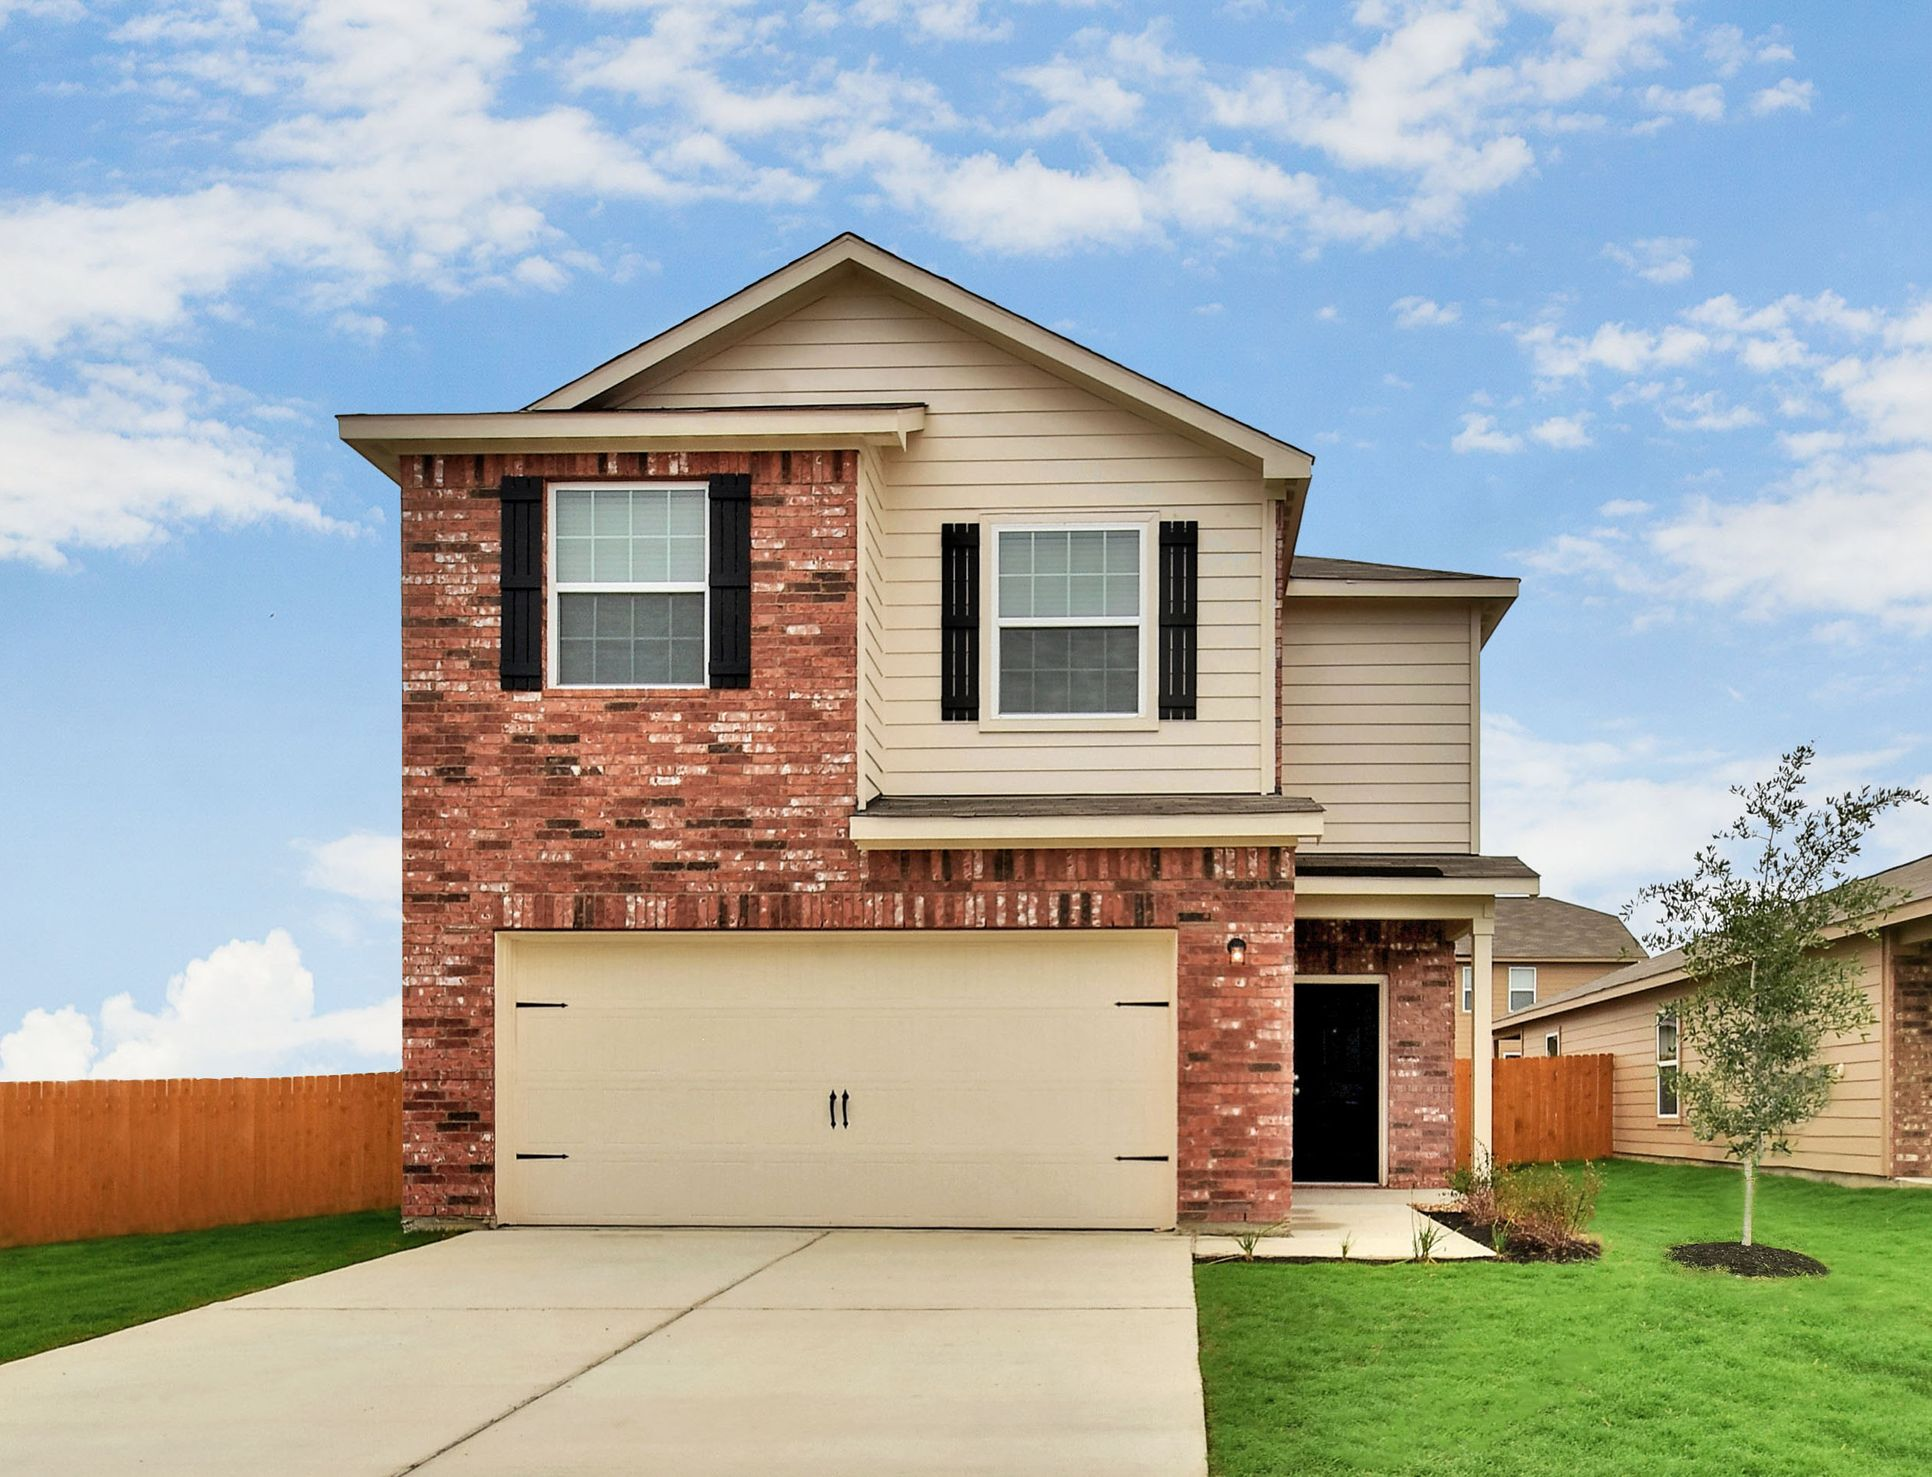 The Mesquite by LGI Homes:Perfect Two-Story Home in a BEAUTIFUL neighborhood.  Tour the Mesquite at Bunton Creek today!